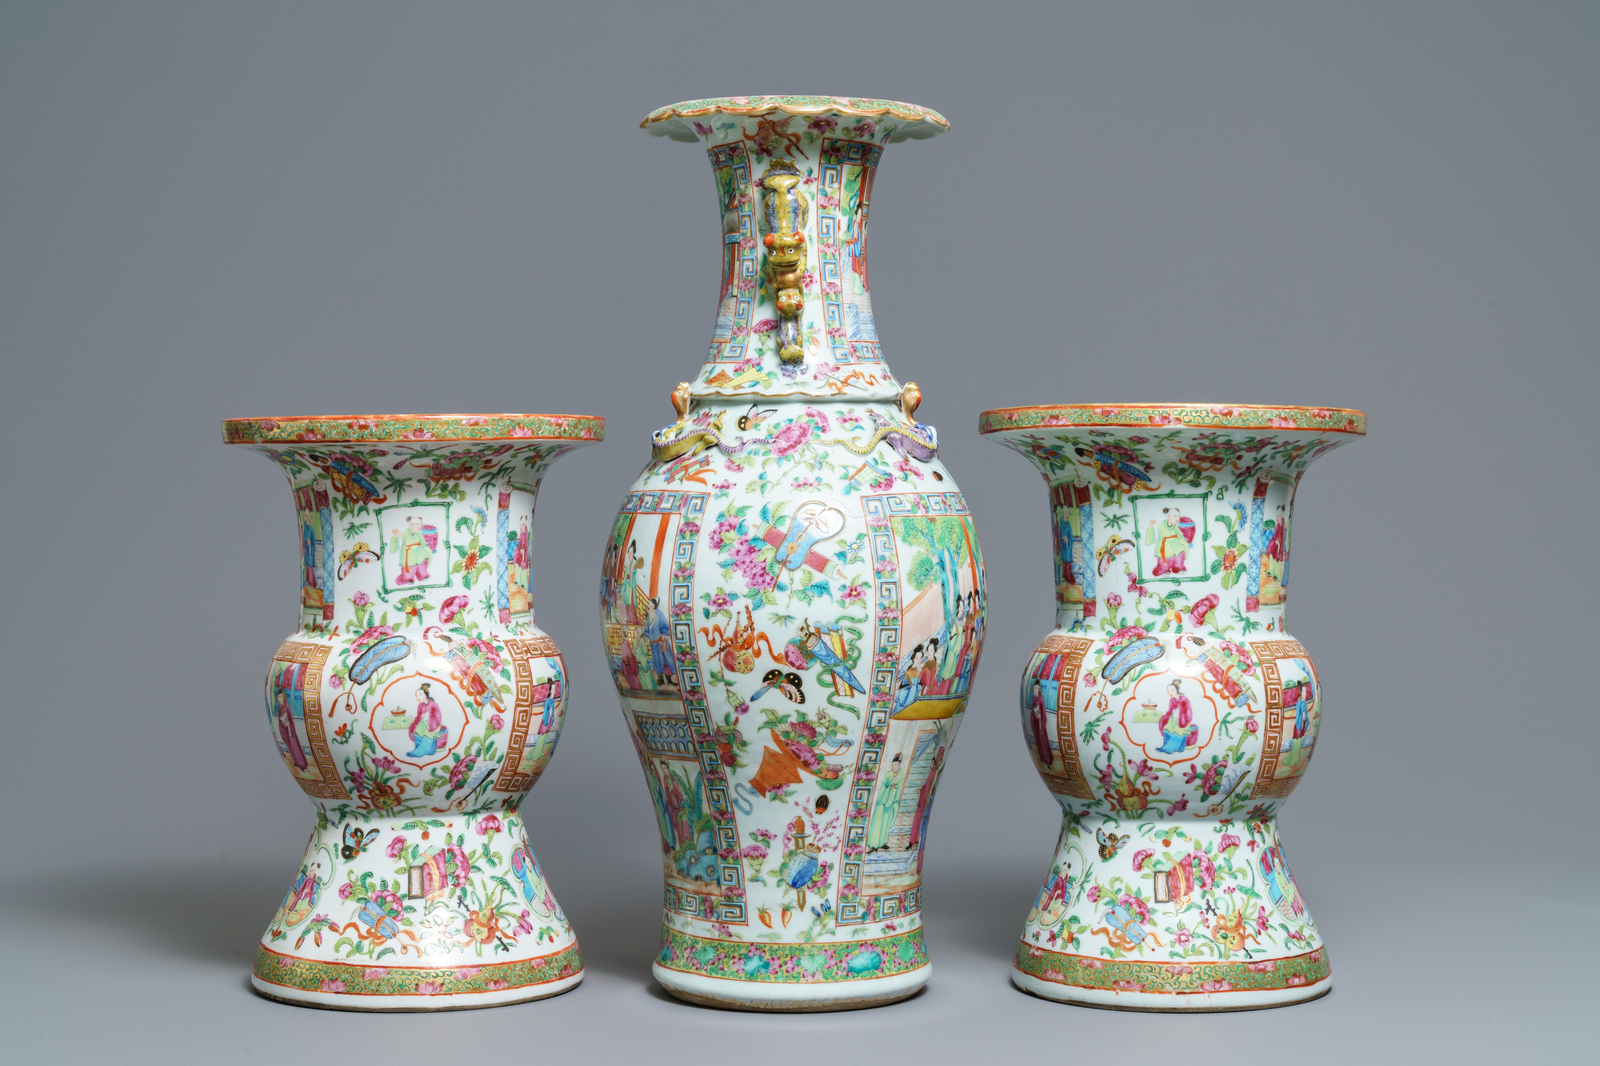 A pair of Chinese Canton famille rose spittoons and a vase, 19th C. - Image 2 of 6